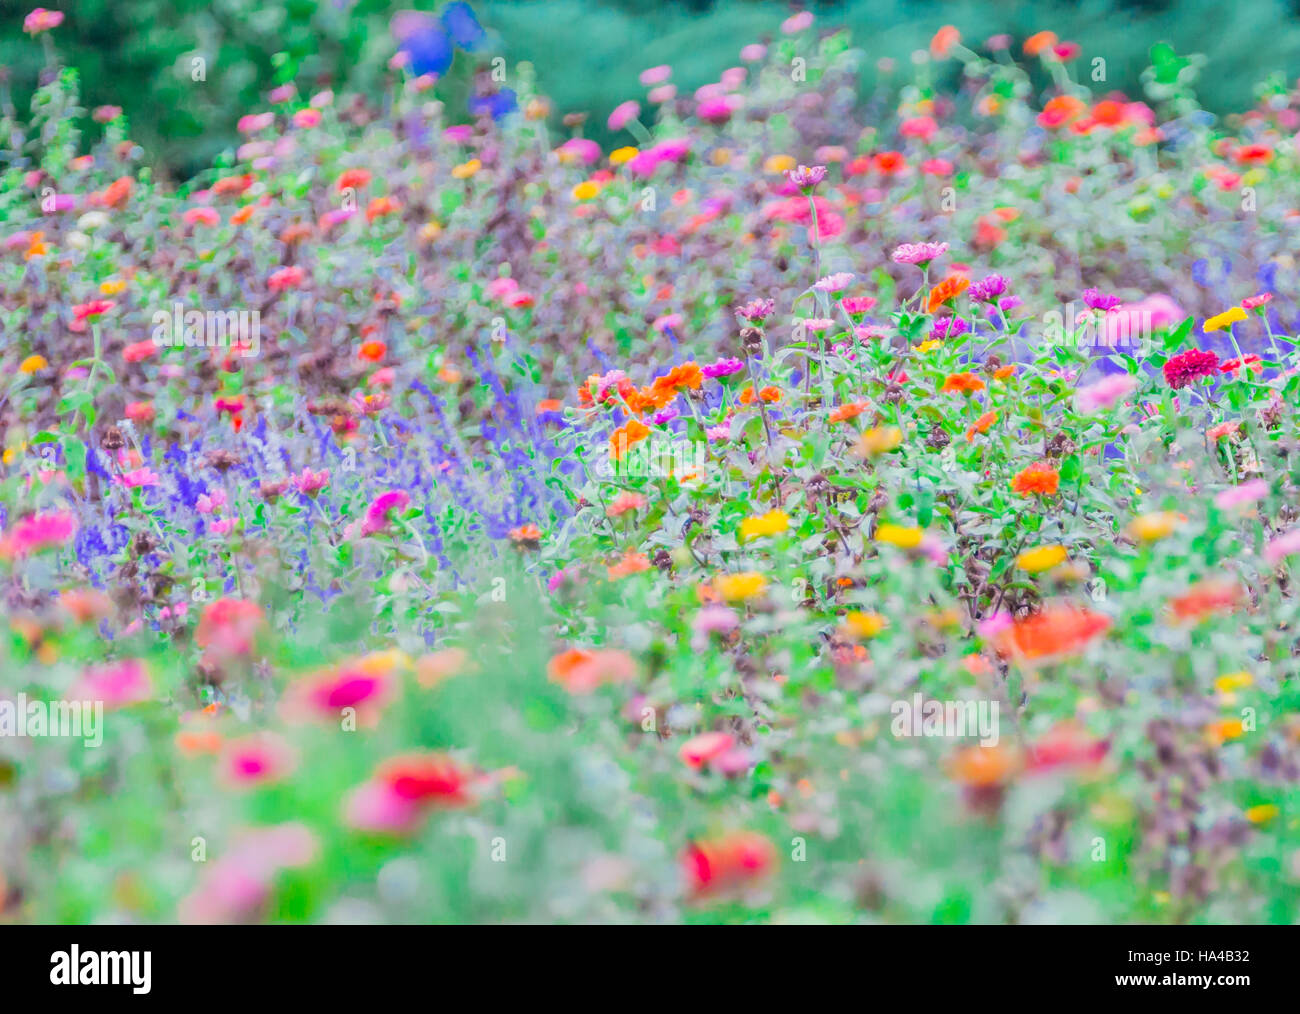 wild flowers creating a sea of color - Stock Image